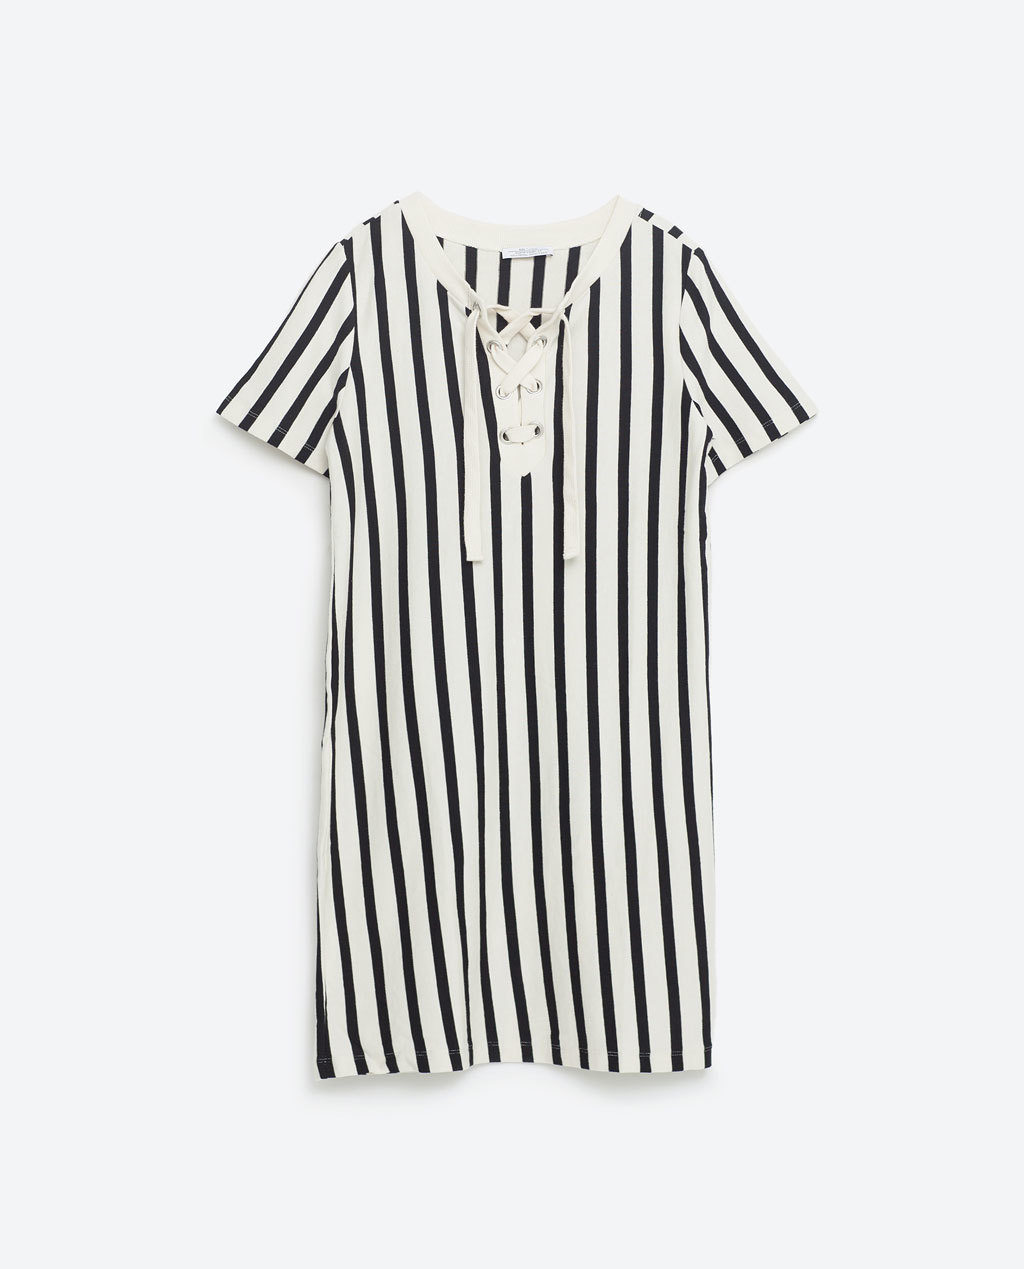 Striped Dress With Cords - style: t-shirt; length: mid thigh; neckline: round neck; pattern: vertical stripes; bust detail: added detail/embellishment at bust; secondary colour: white; predominant colour: black; occasions: casual; fit: straight cut; fibres: cotton - mix; sleeve length: short sleeve; sleeve style: standard; trends: monochrome; texture group: cotton feel fabrics; pattern type: fabric; pattern size: standard; season: s/s 2016; wardrobe: highlight